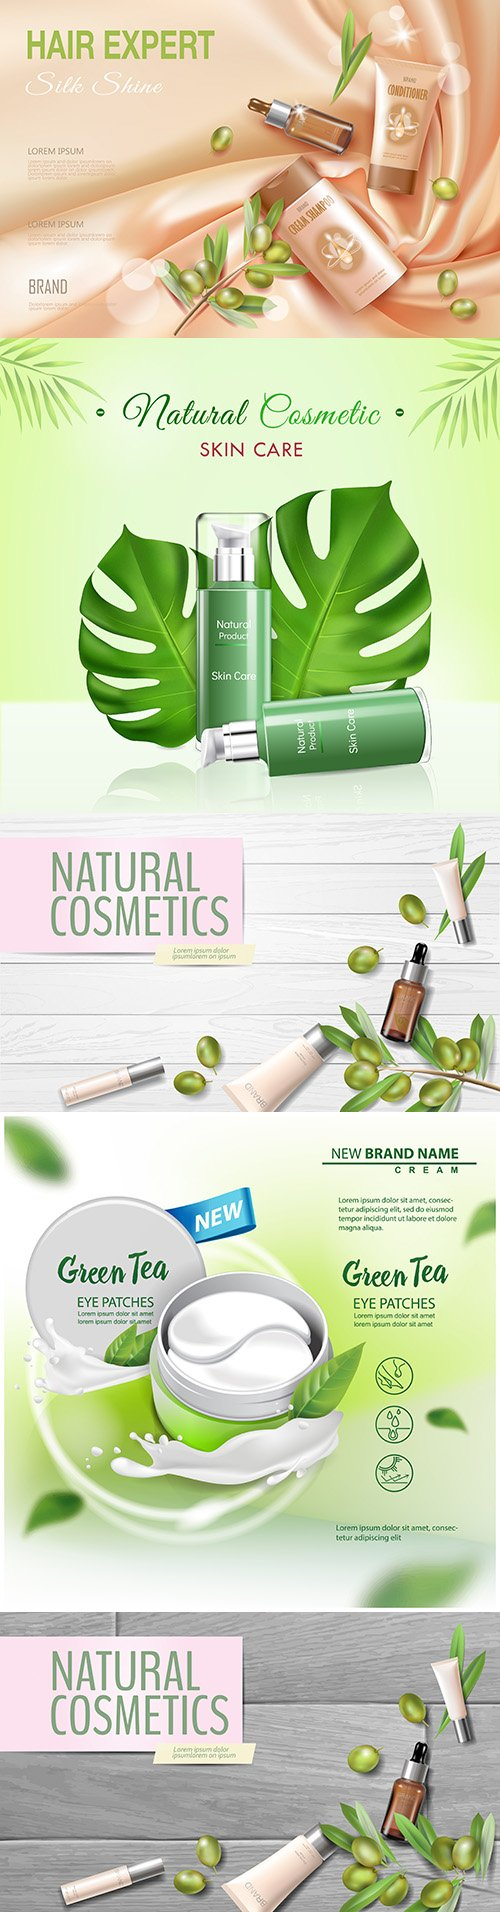 Natural cosmetics with olive oil realistic illustrations